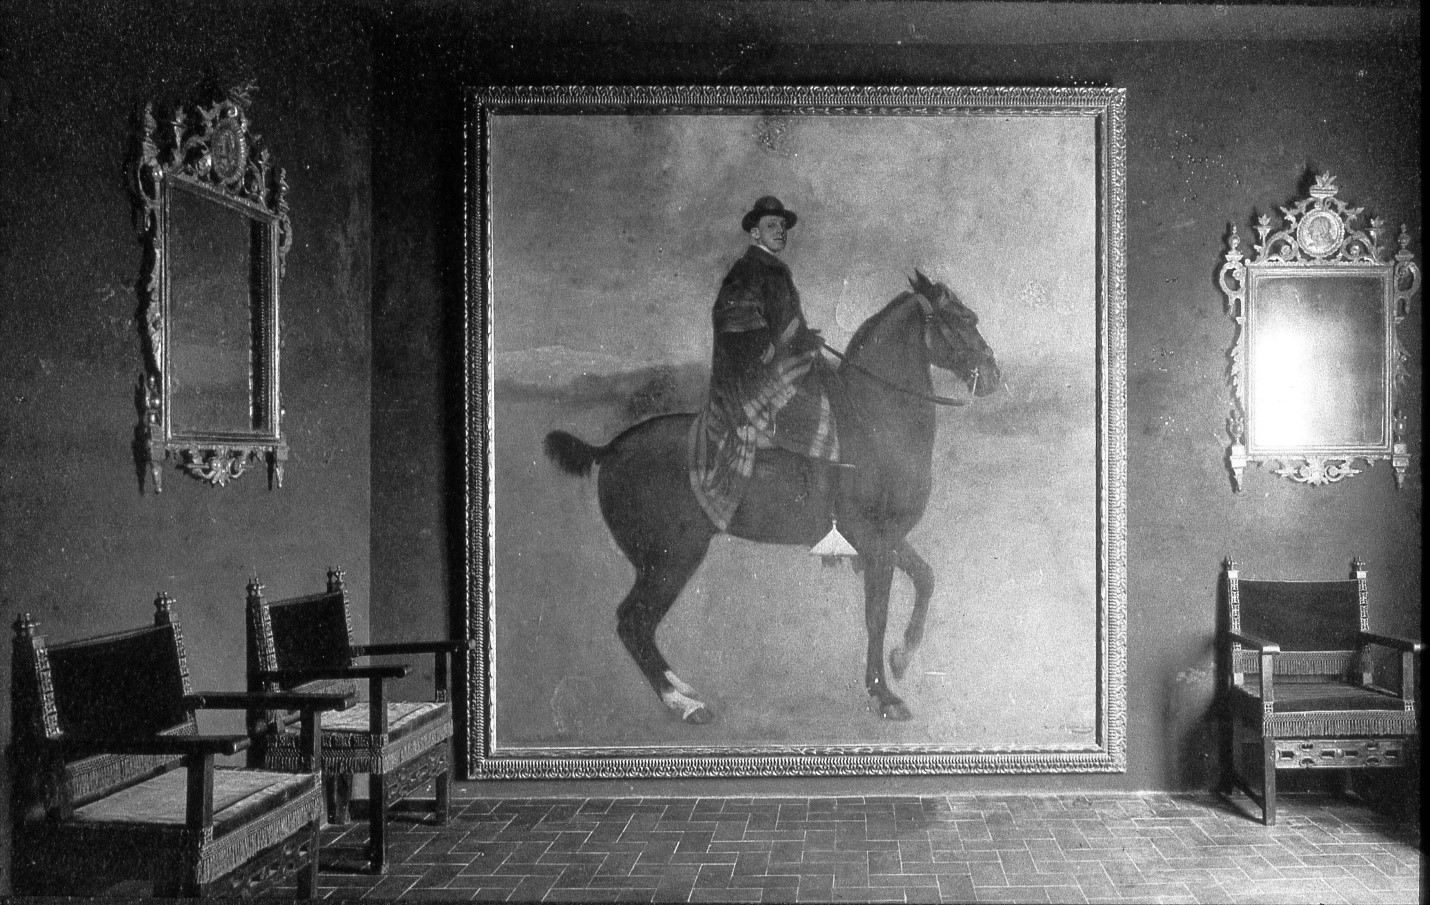 Interior of Maricel in 1917 shows Spanish decorative furnishings and master artworks that later were transferred to the Deering Estate Stone House and major museums, including this 1904 Equestrian Portrait of young King Alfonso XIII by Ramón Casas